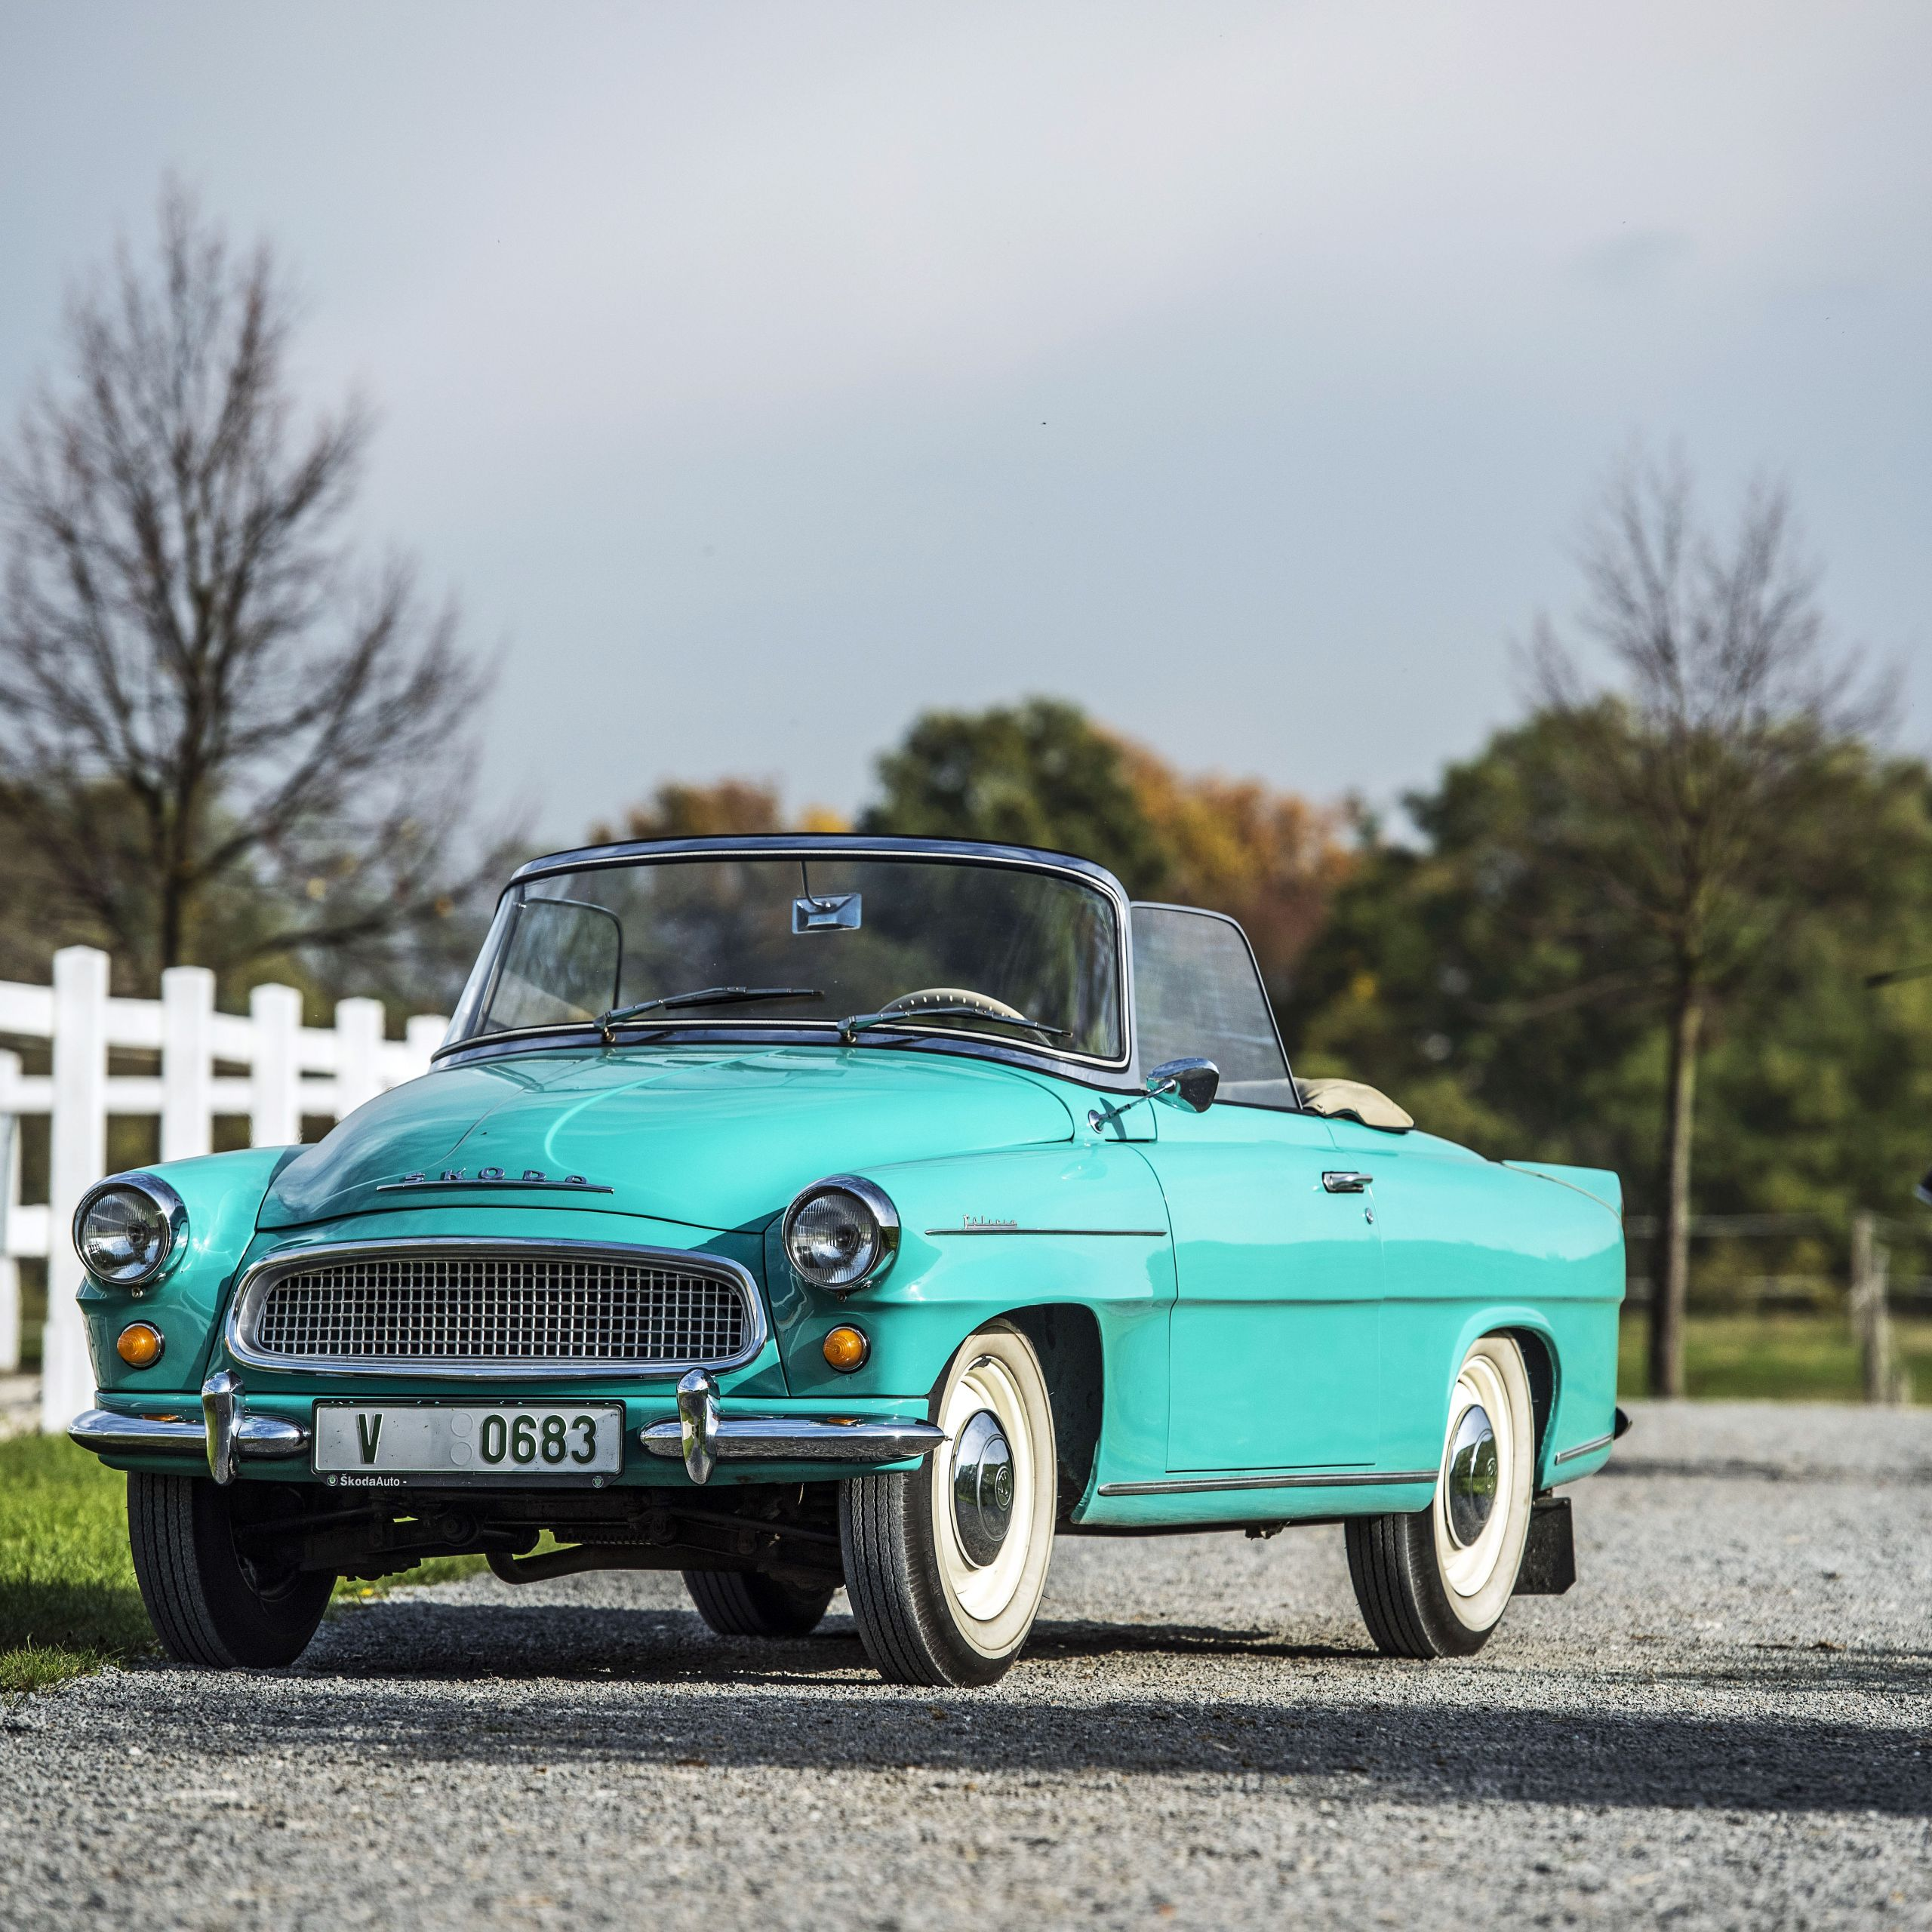 Cheap Cars for Sale Near Me Under 2000 Elegant the Åkoda Felicia Convertible Celebrated Its World Premiere